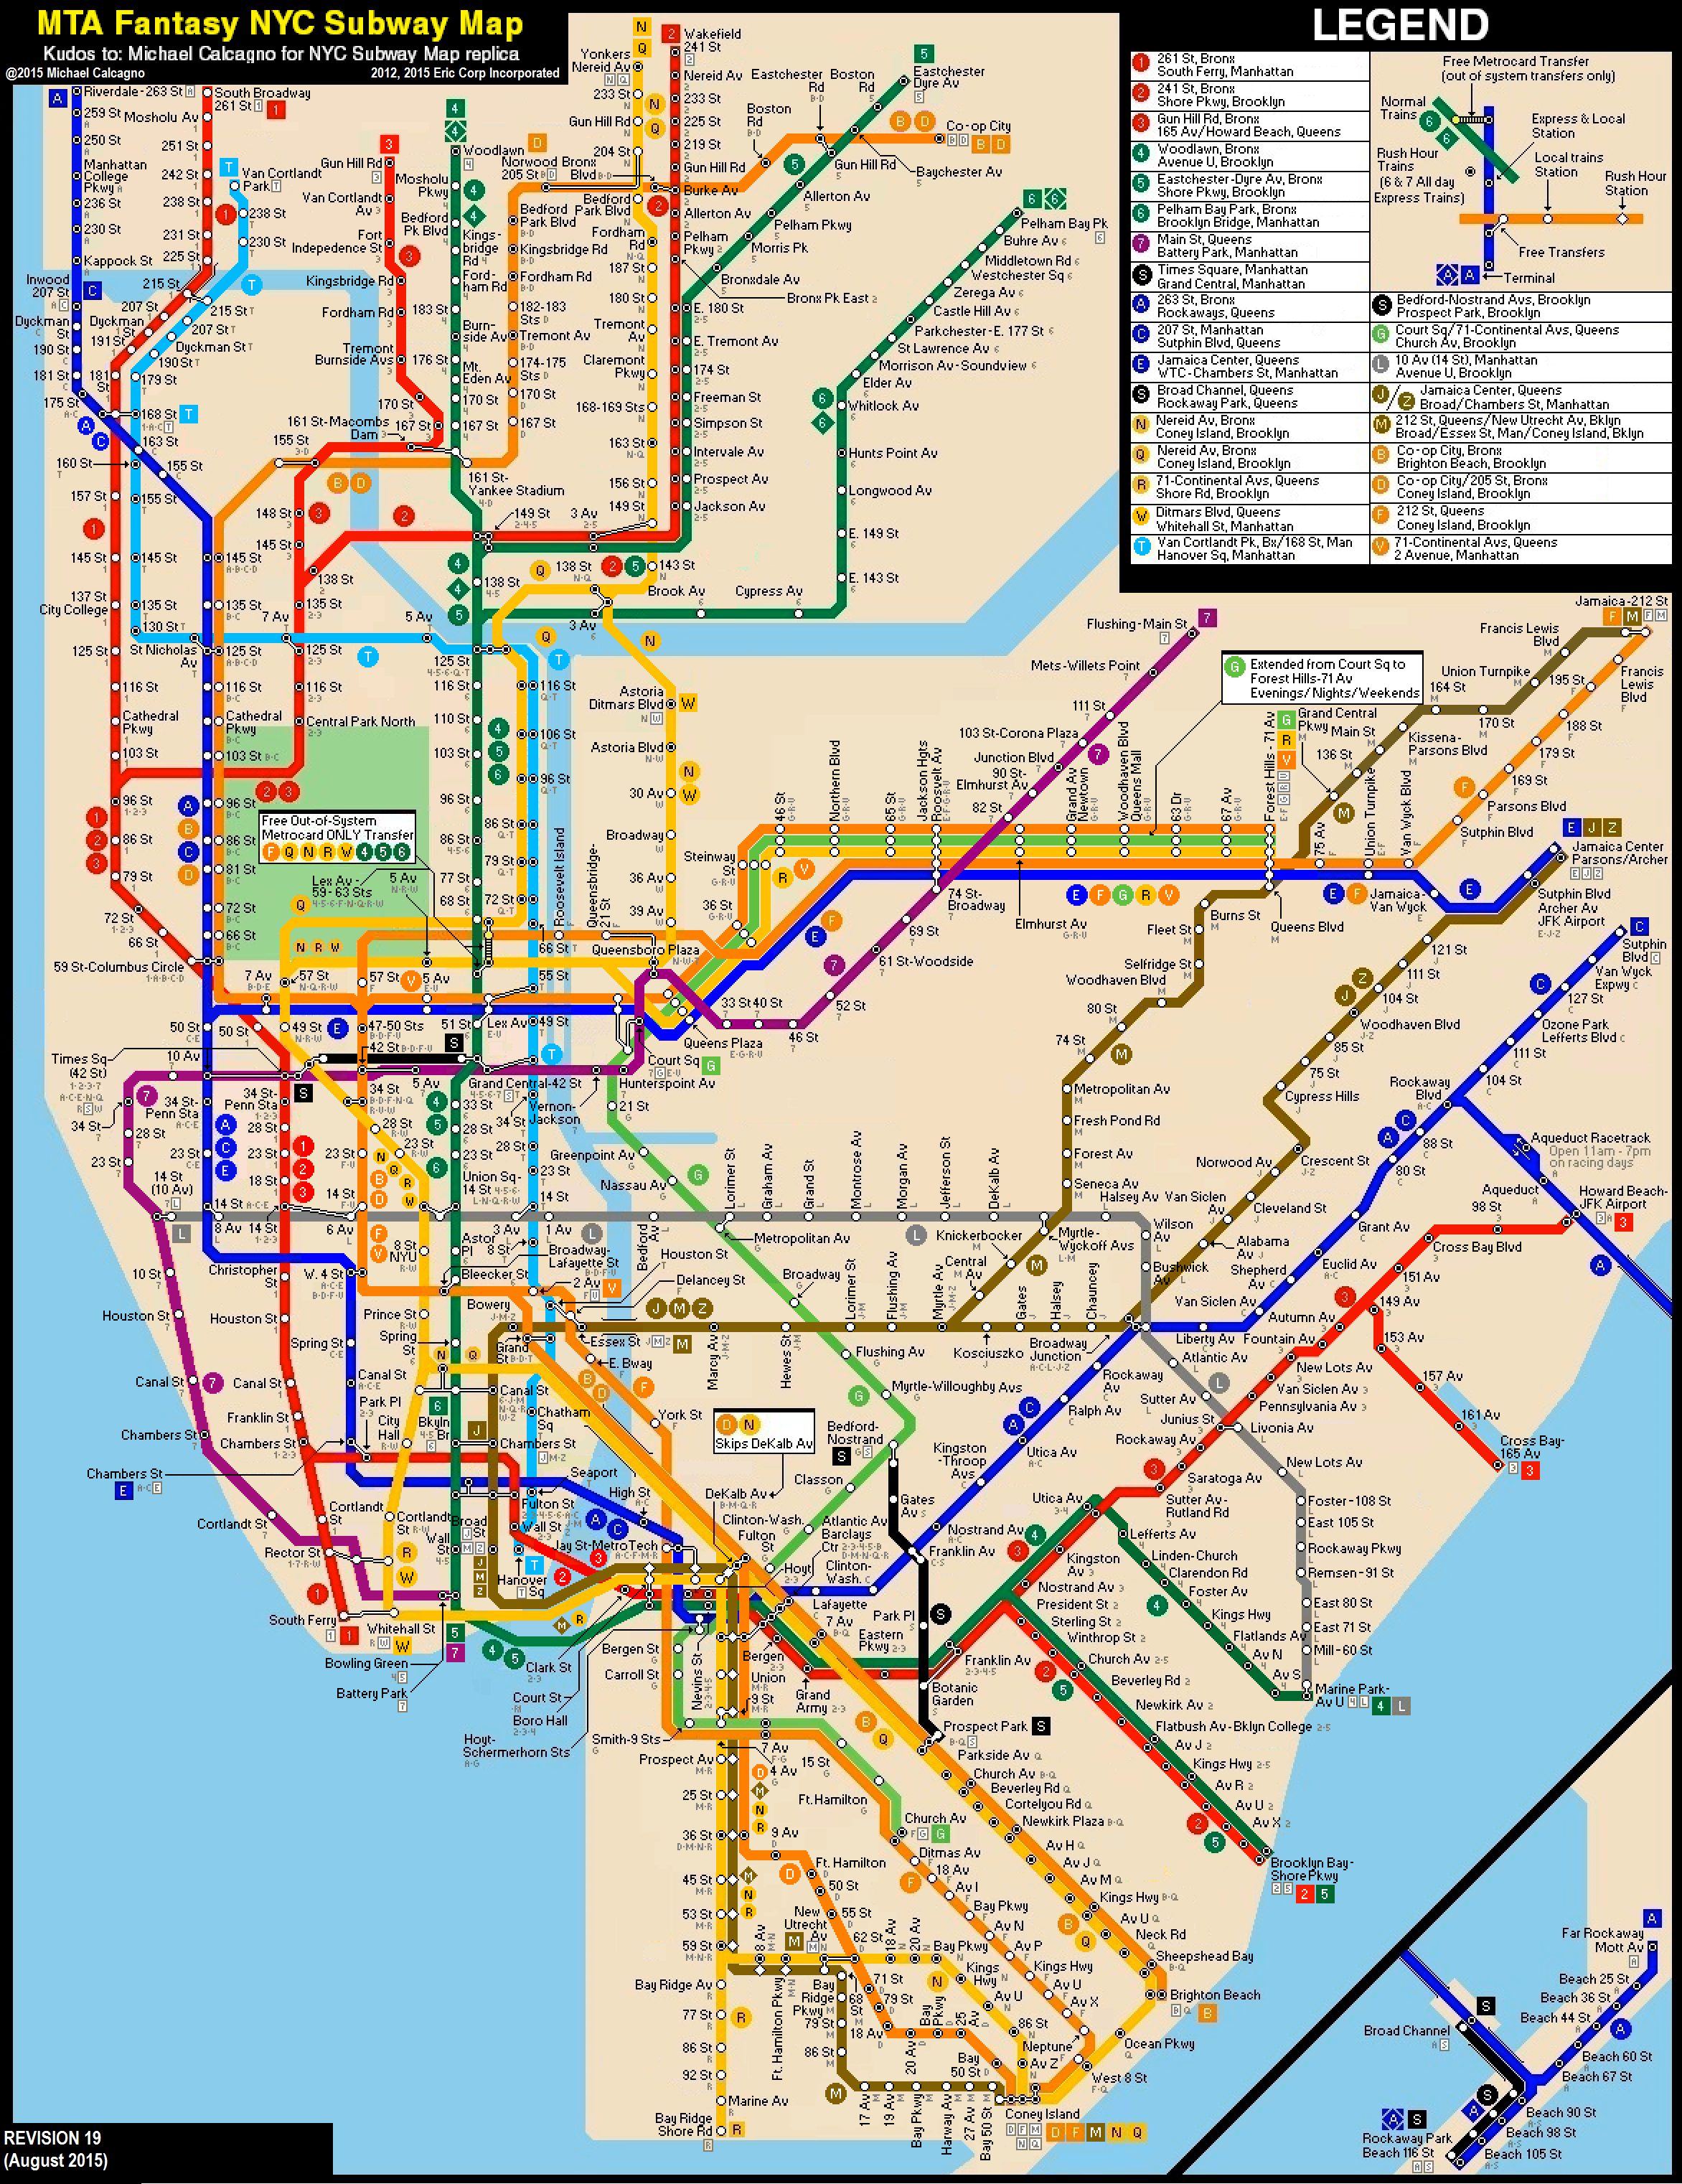 New York Subway Map Future.New York City Subway Fantasy Map Revision 19 By Ecinc2xxx On